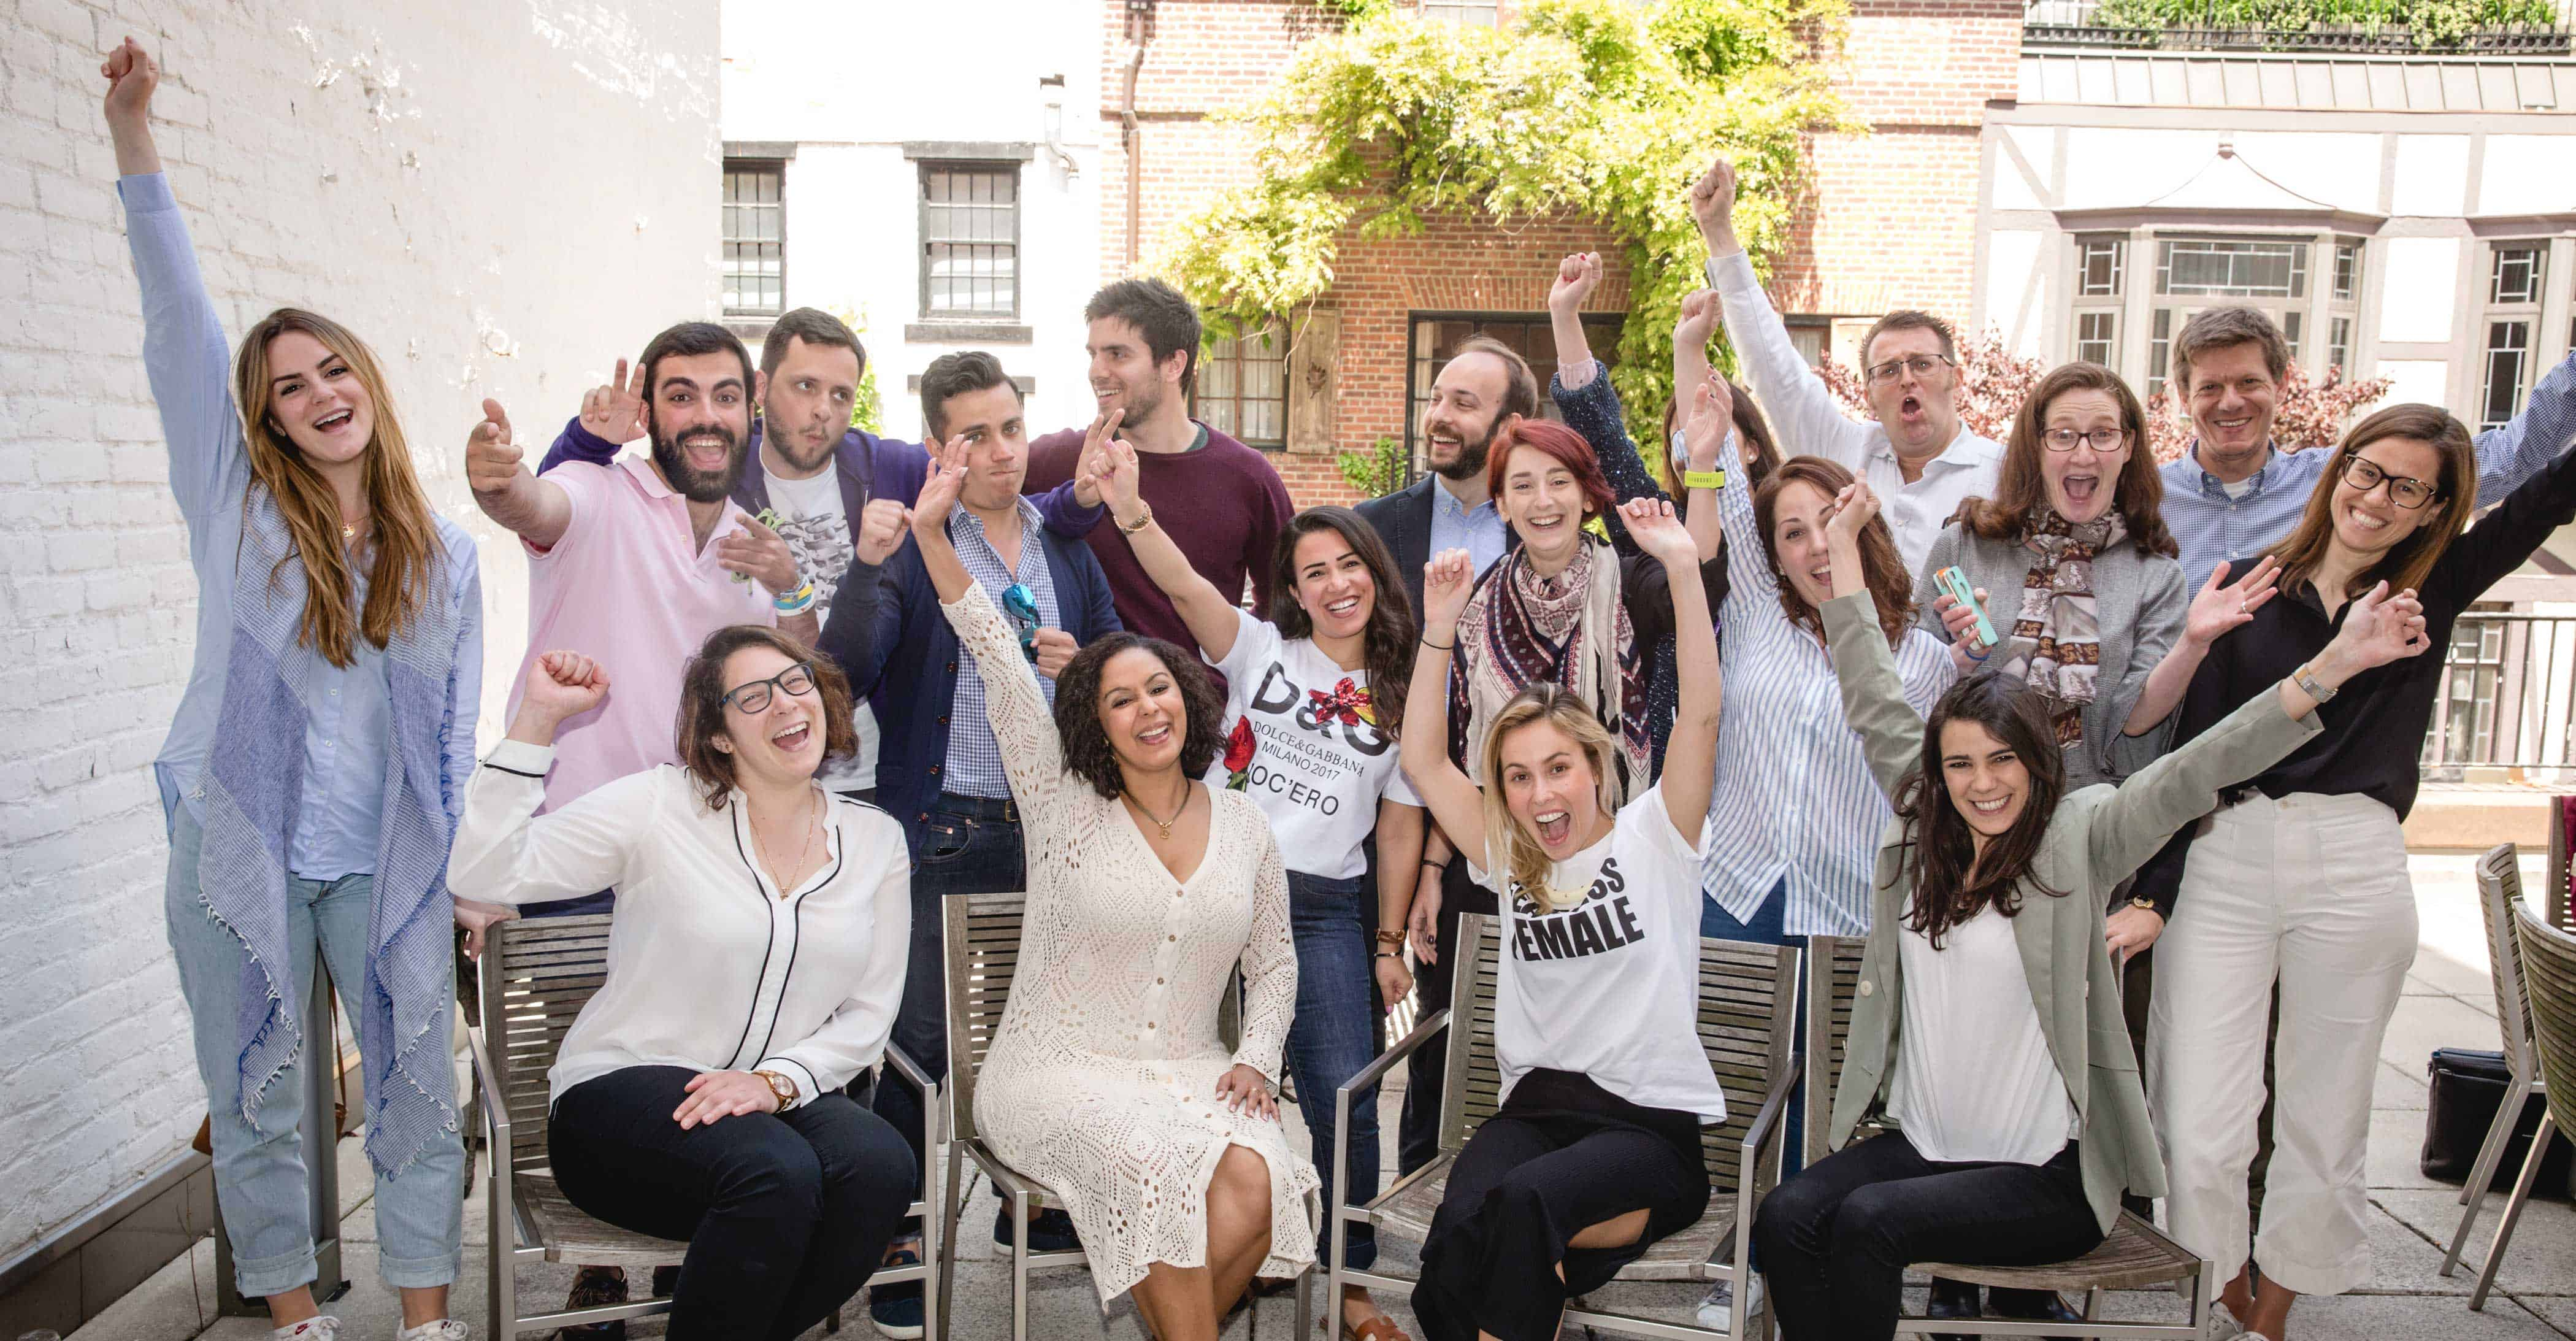 Ie Law School Students Share Their Academic Experience At Nyu School Of Law Ie Law School